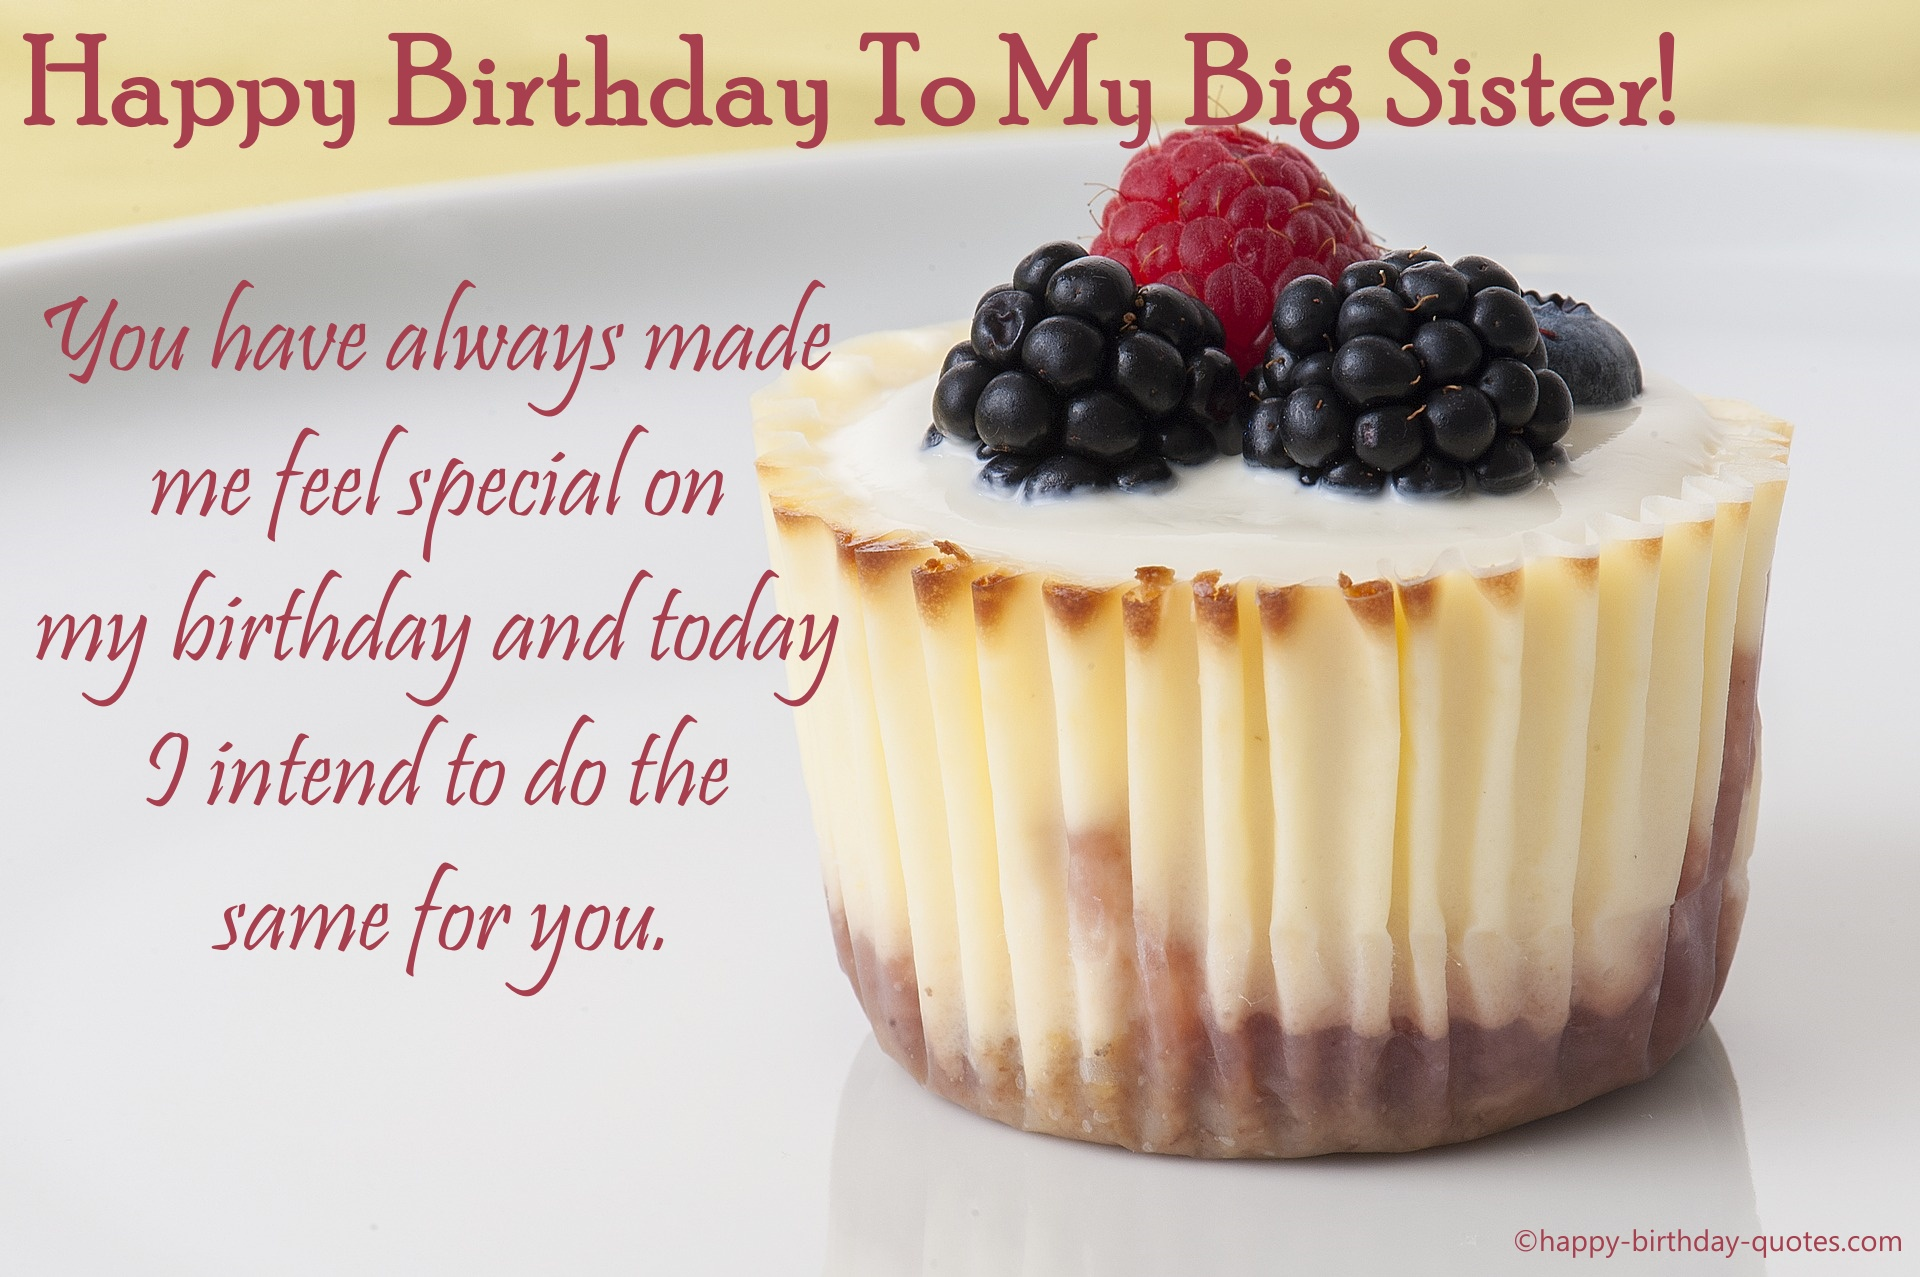 Birthday Wishes For Big Sister